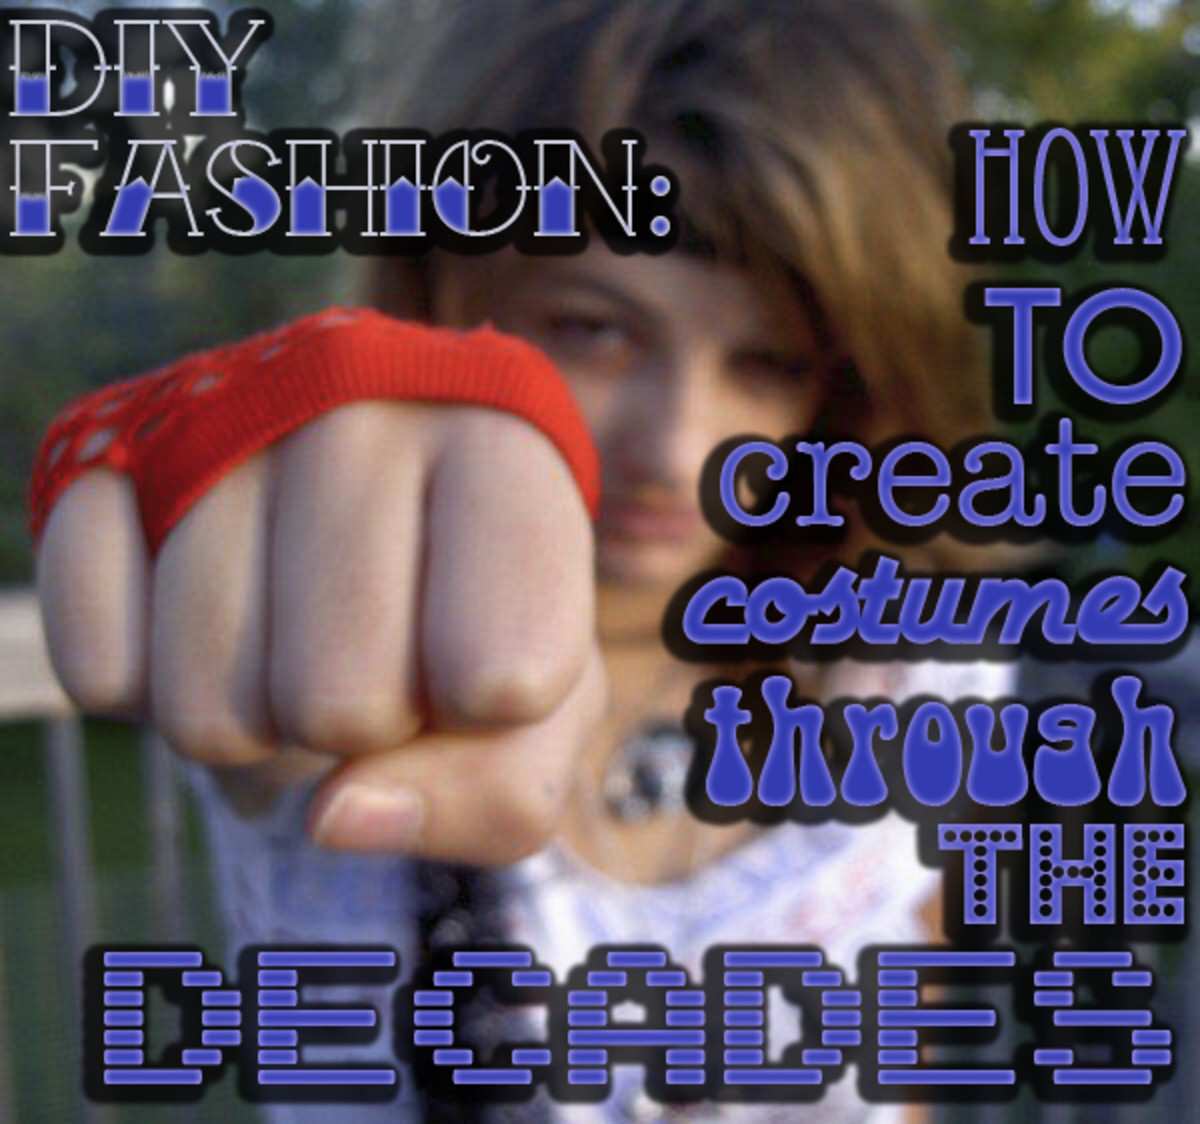 diy-fashion-costumes-through-the-decades